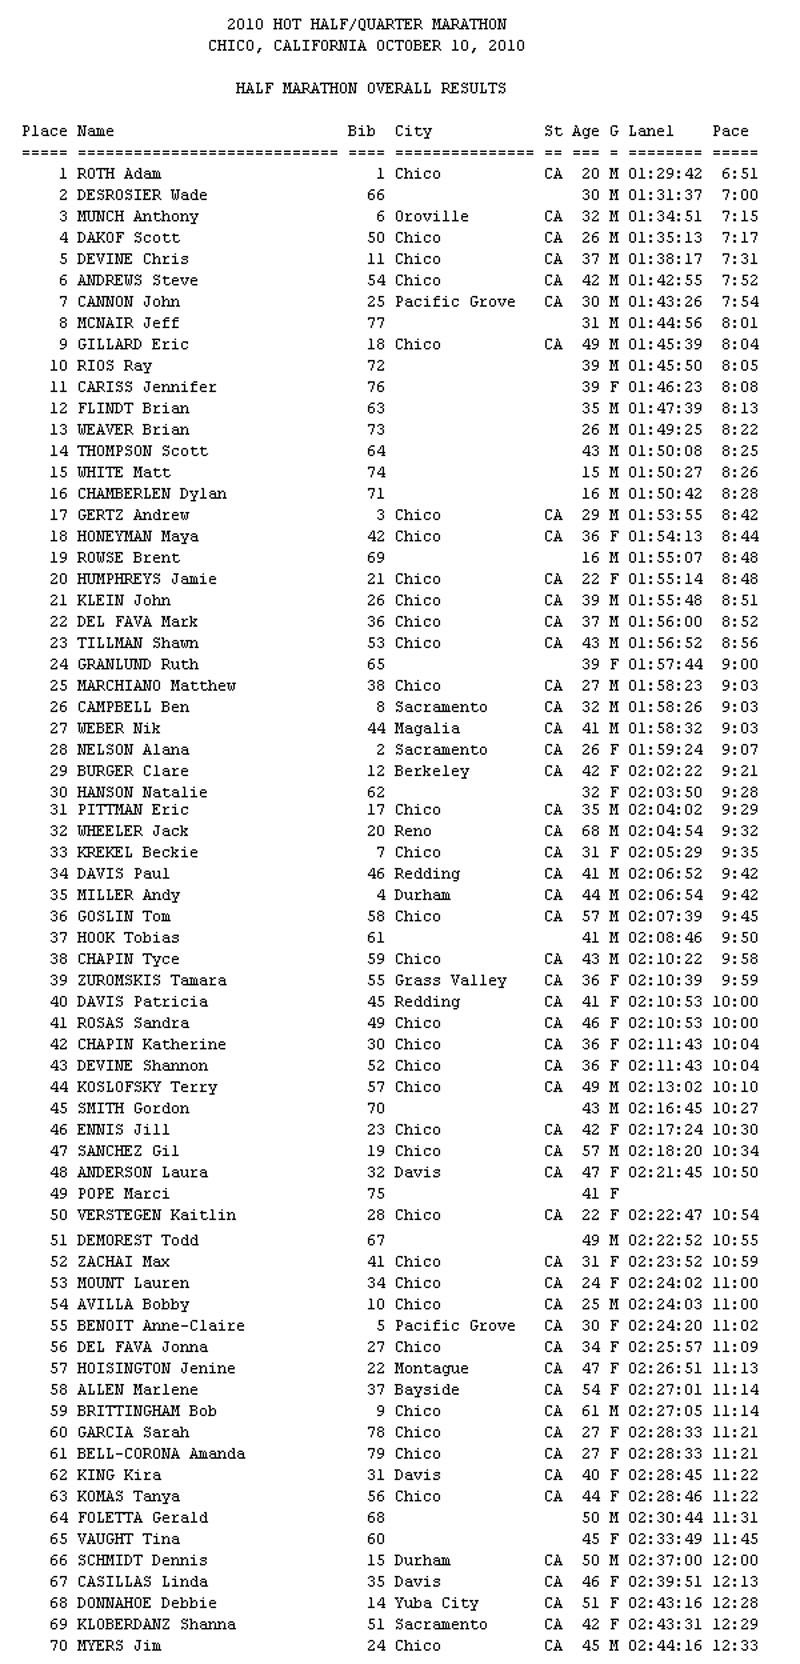 2010 HOT HALF/QUARTER MARATHON CHICO, CALIFORNIA OCTOBER 10, 2010 - HALF MARATHON OVERALL RESULTS